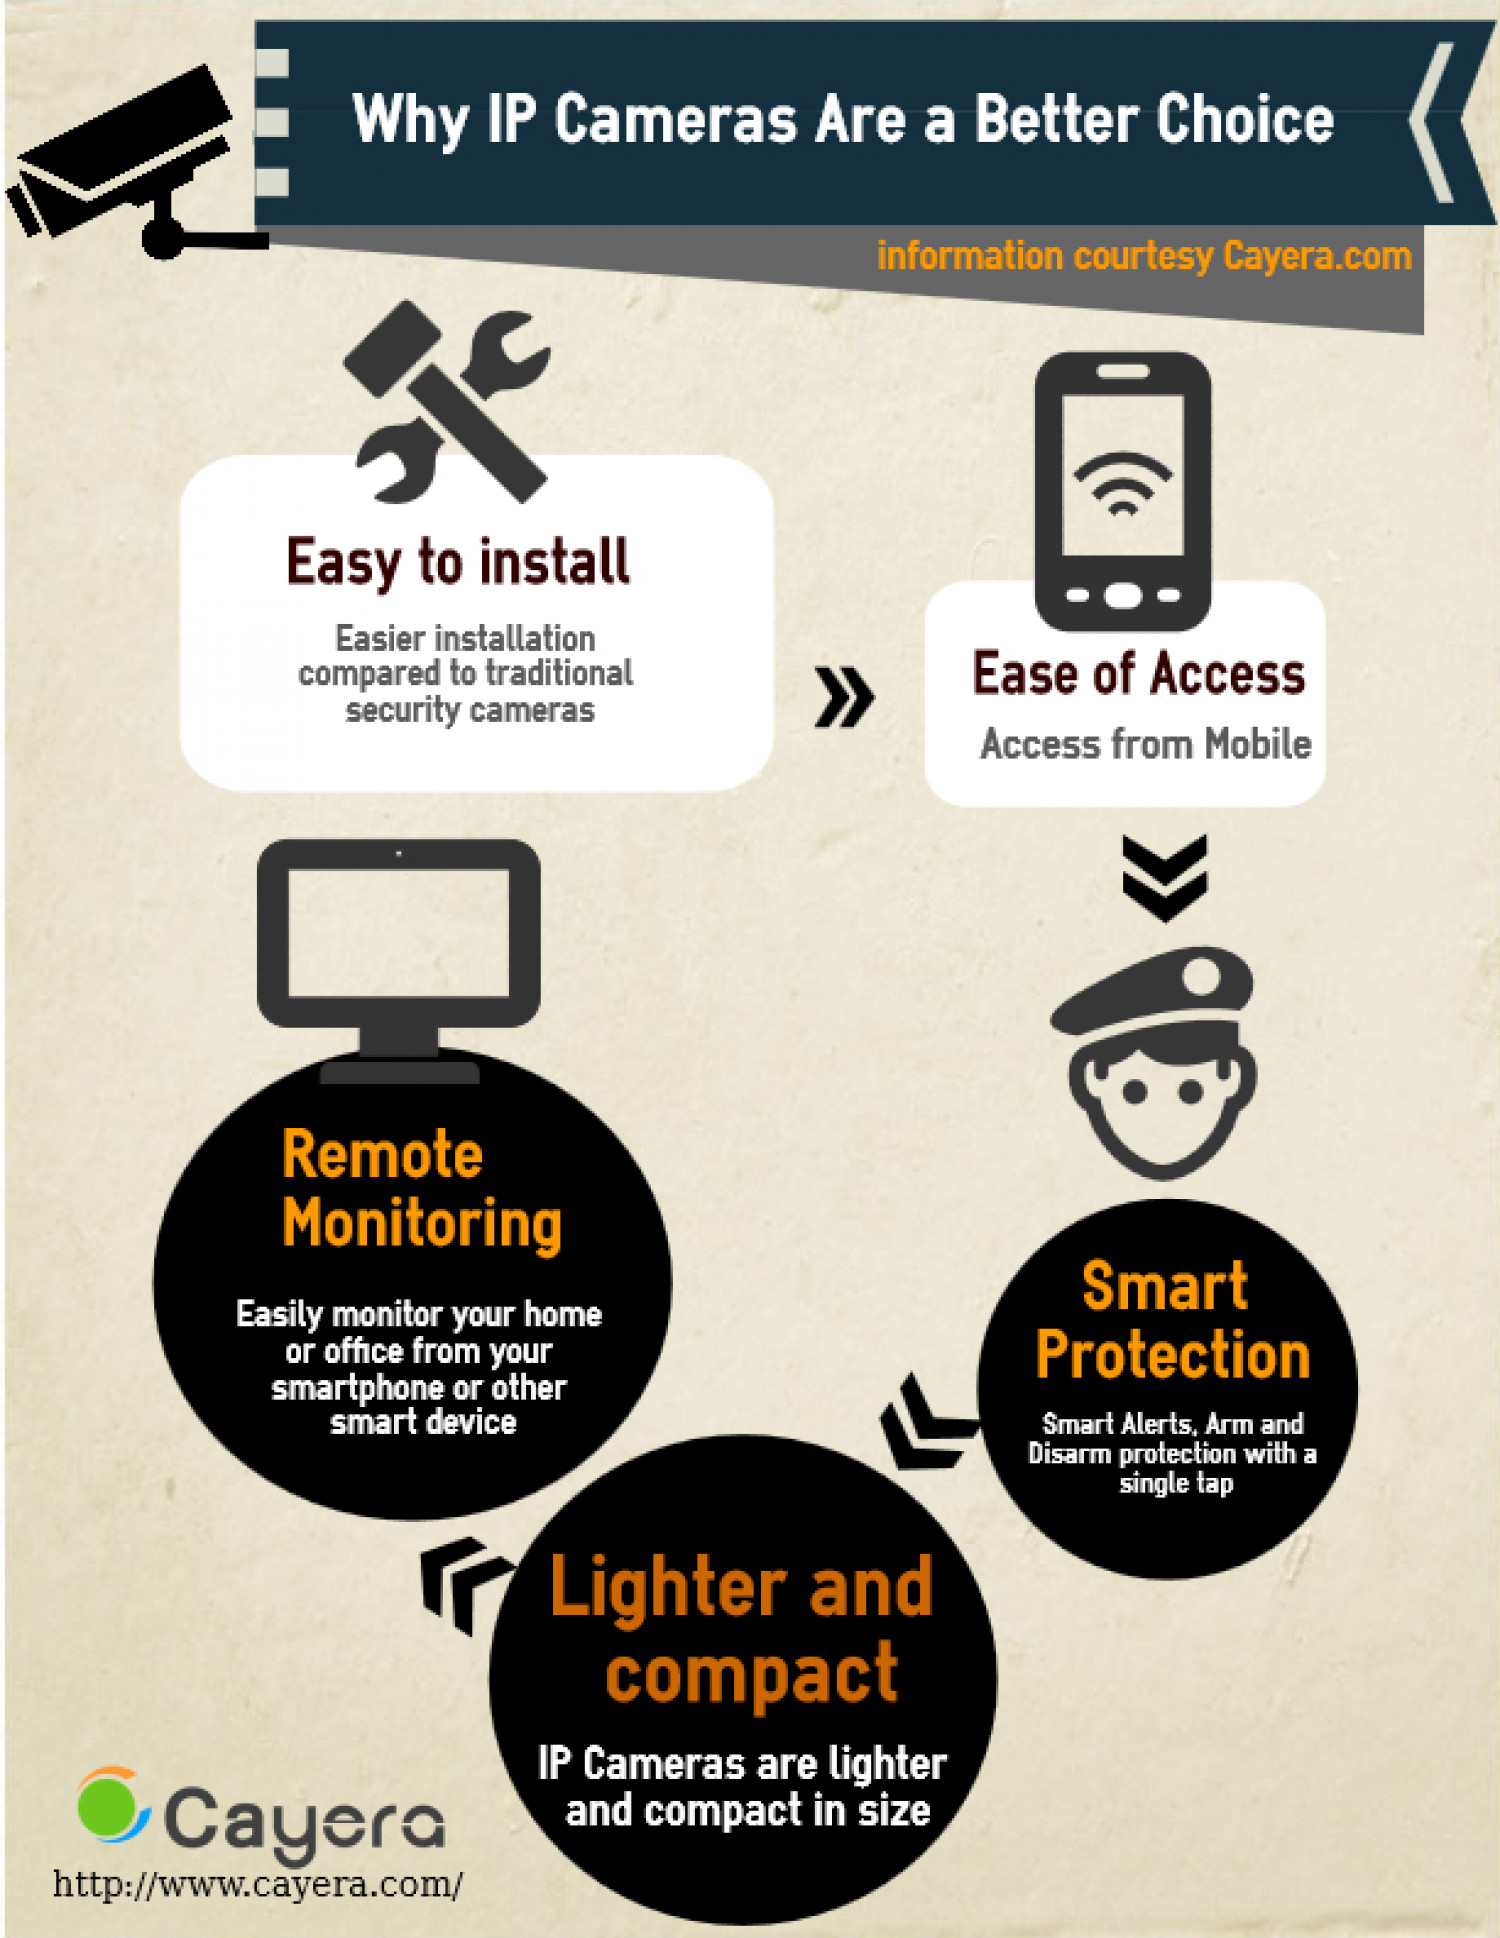 Why IP Cameras are a Better Choice? Infographic